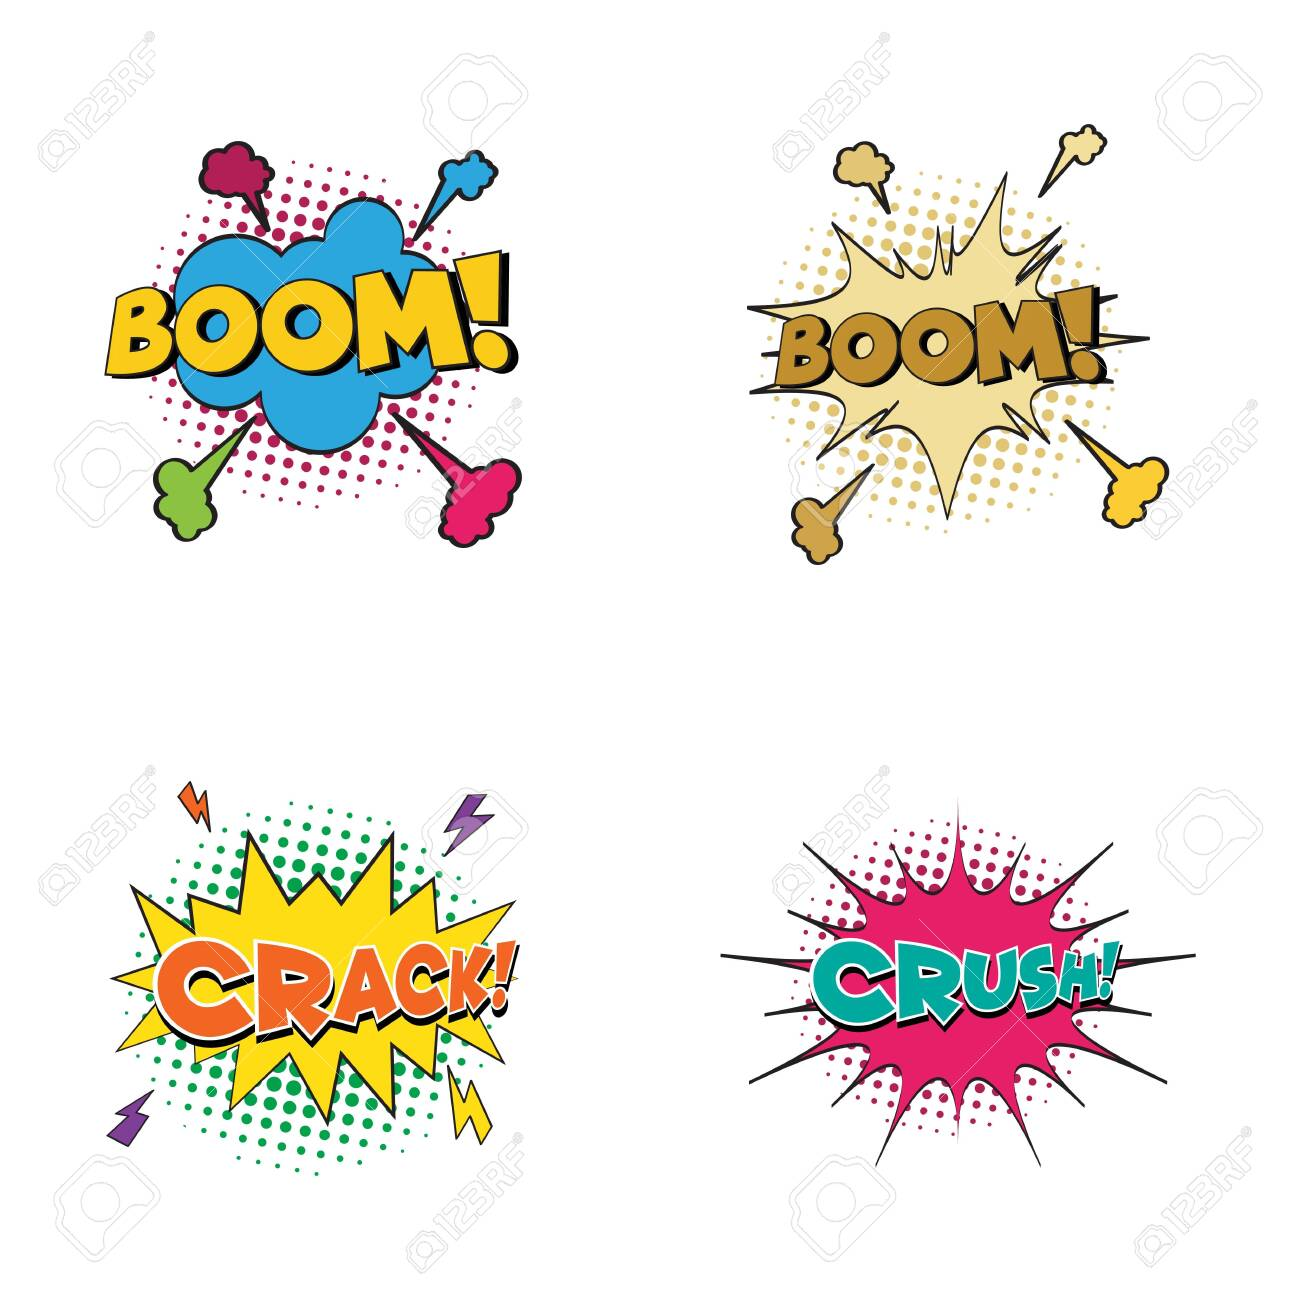 Comic Text Pop Art Style Cartoon Sound Effect Illustration Royalty Free Cliparts Vectors And Stock Illustration Image 137787559